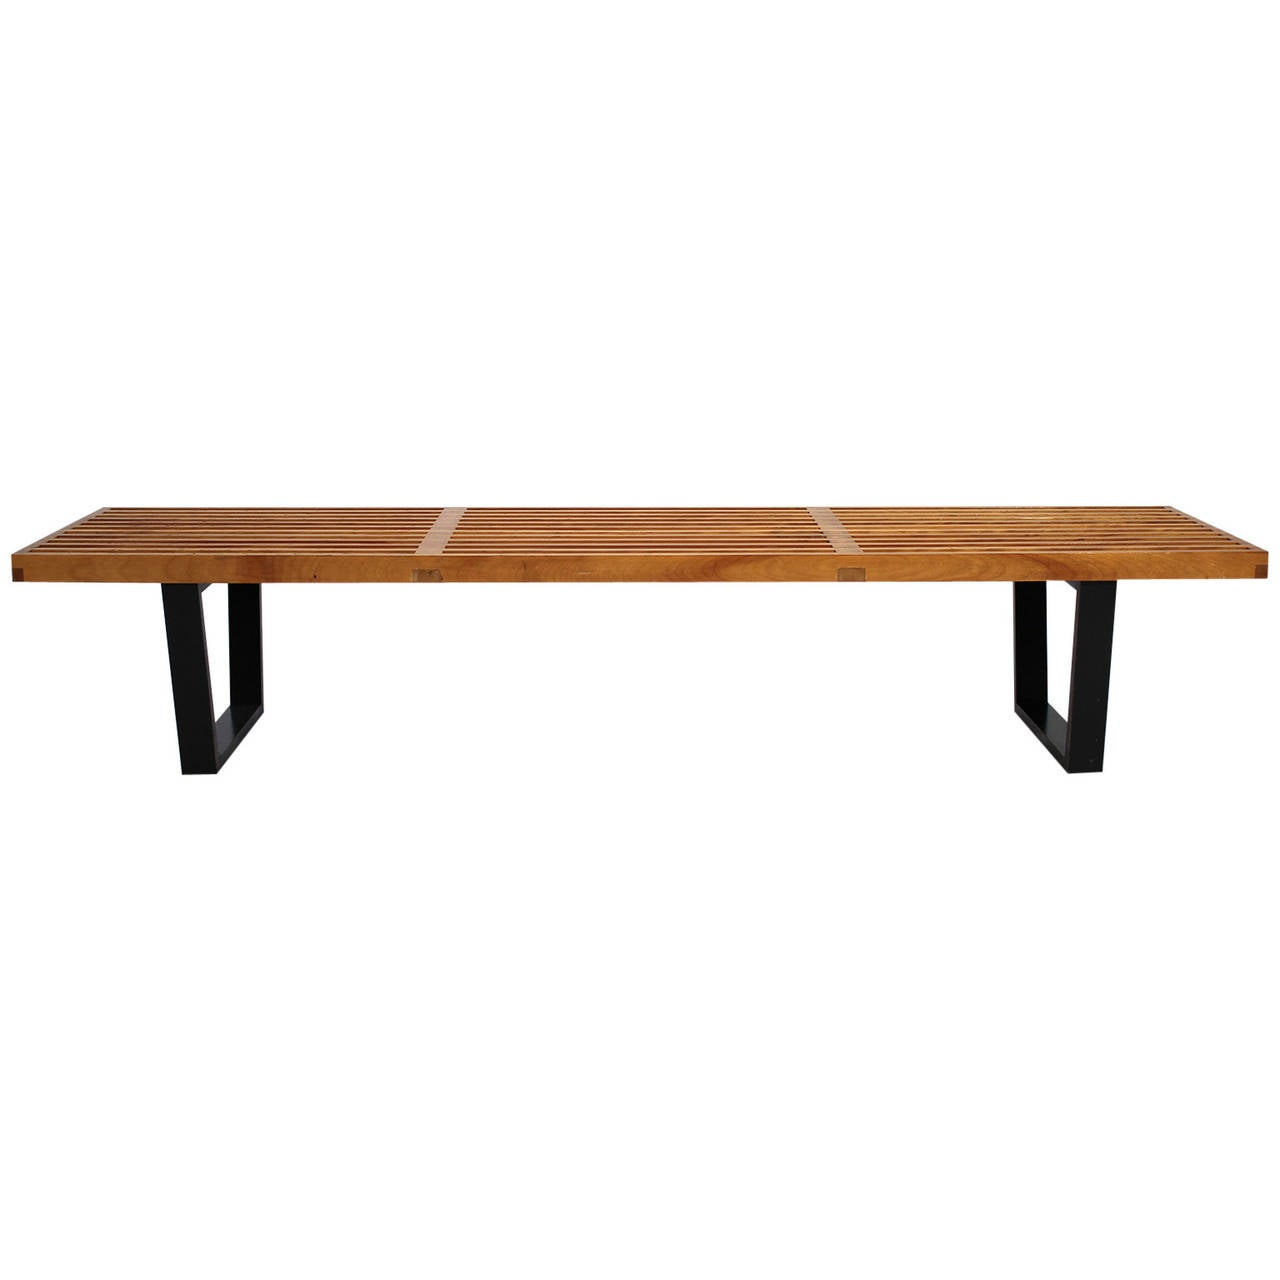 Vintage george nelson for herman miller bench at 1stdibs - Vintage herman miller ...